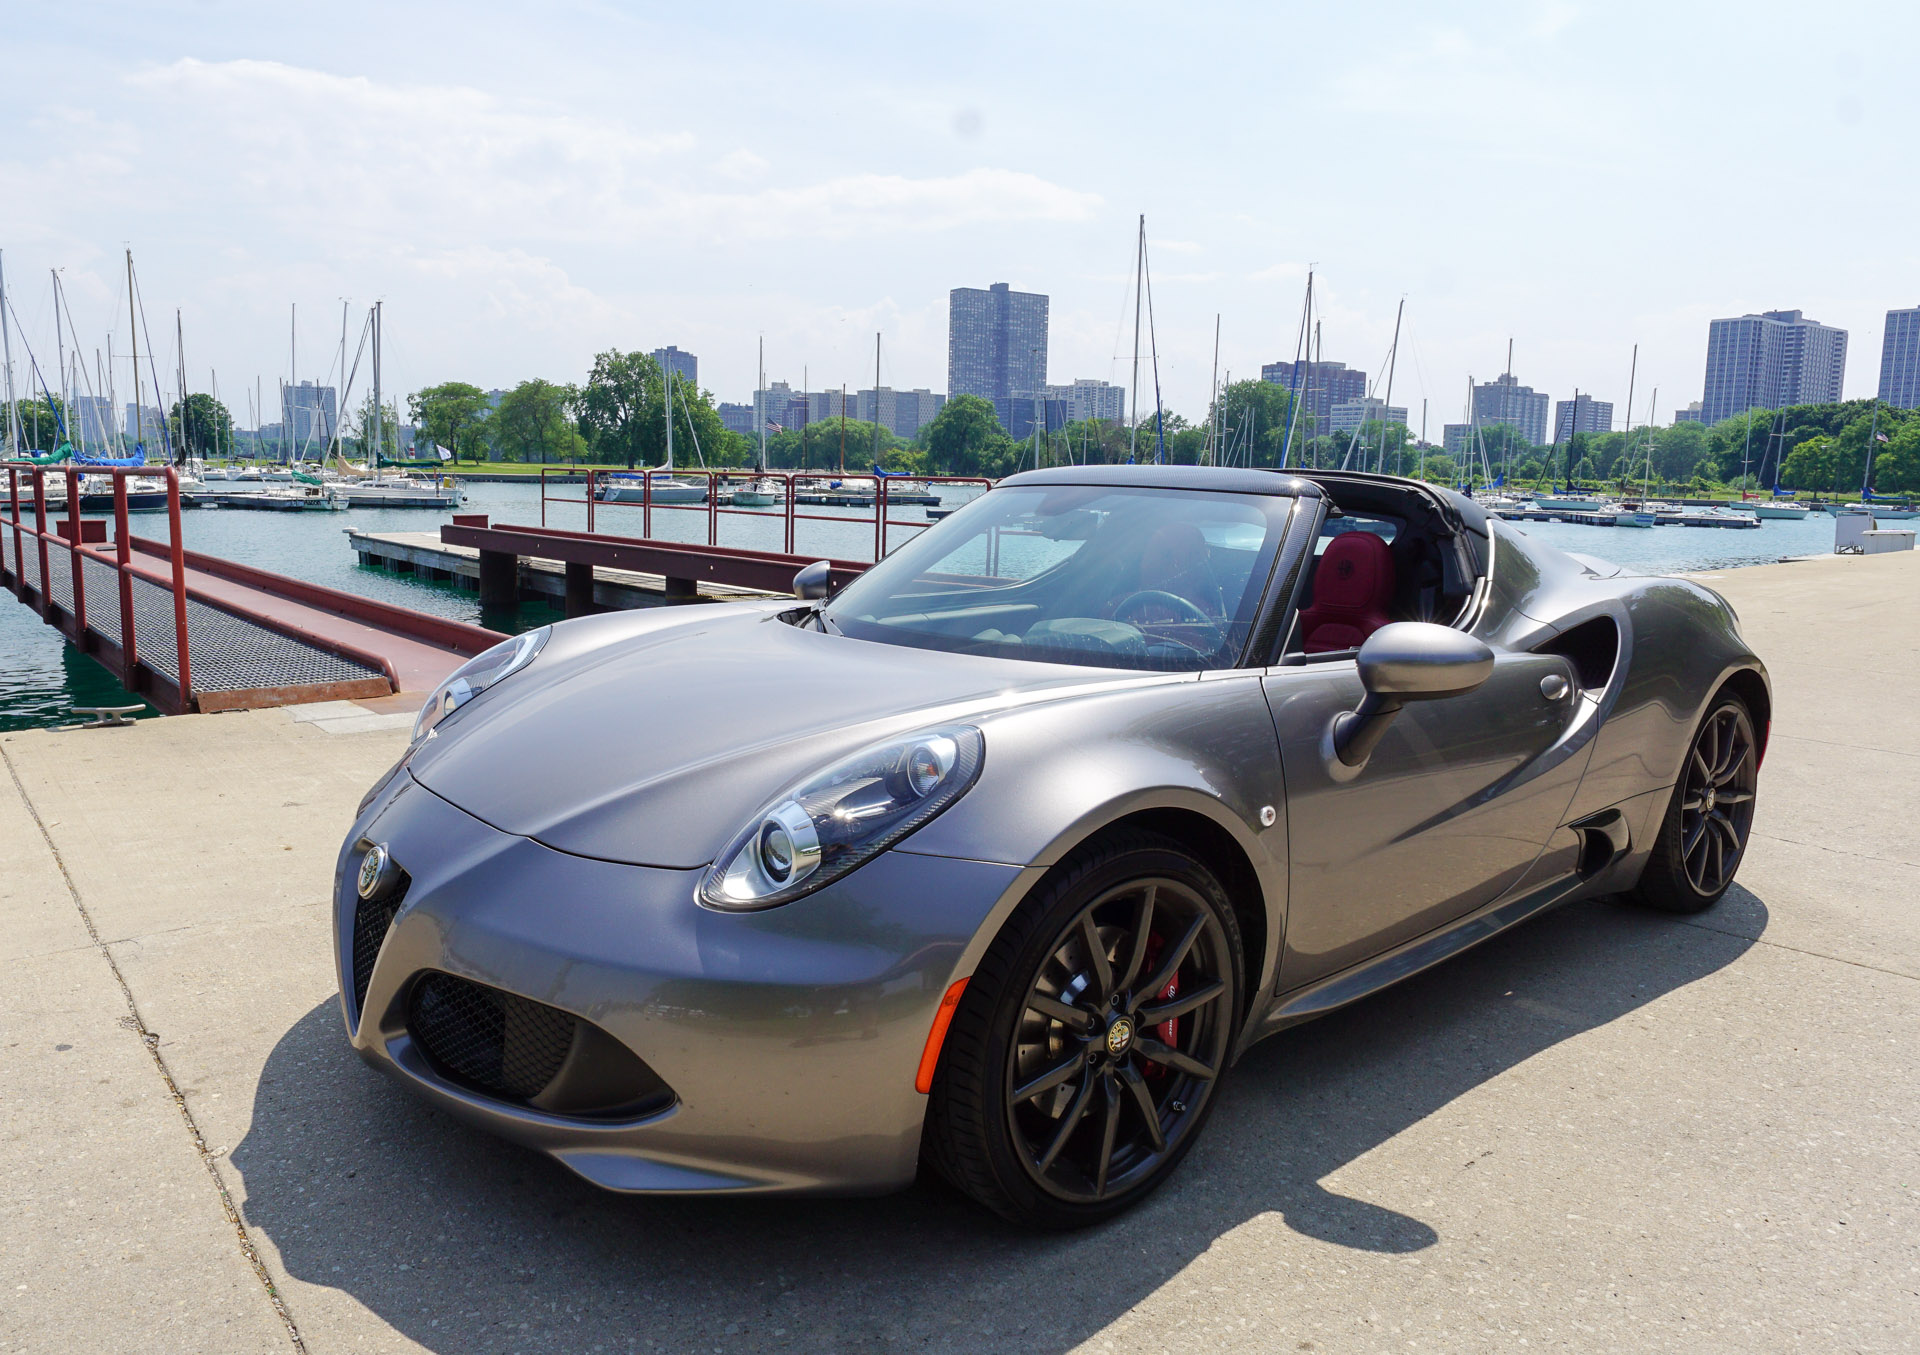 alfa romeo 4c spider review a tiny monster 95 octane. Black Bedroom Furniture Sets. Home Design Ideas